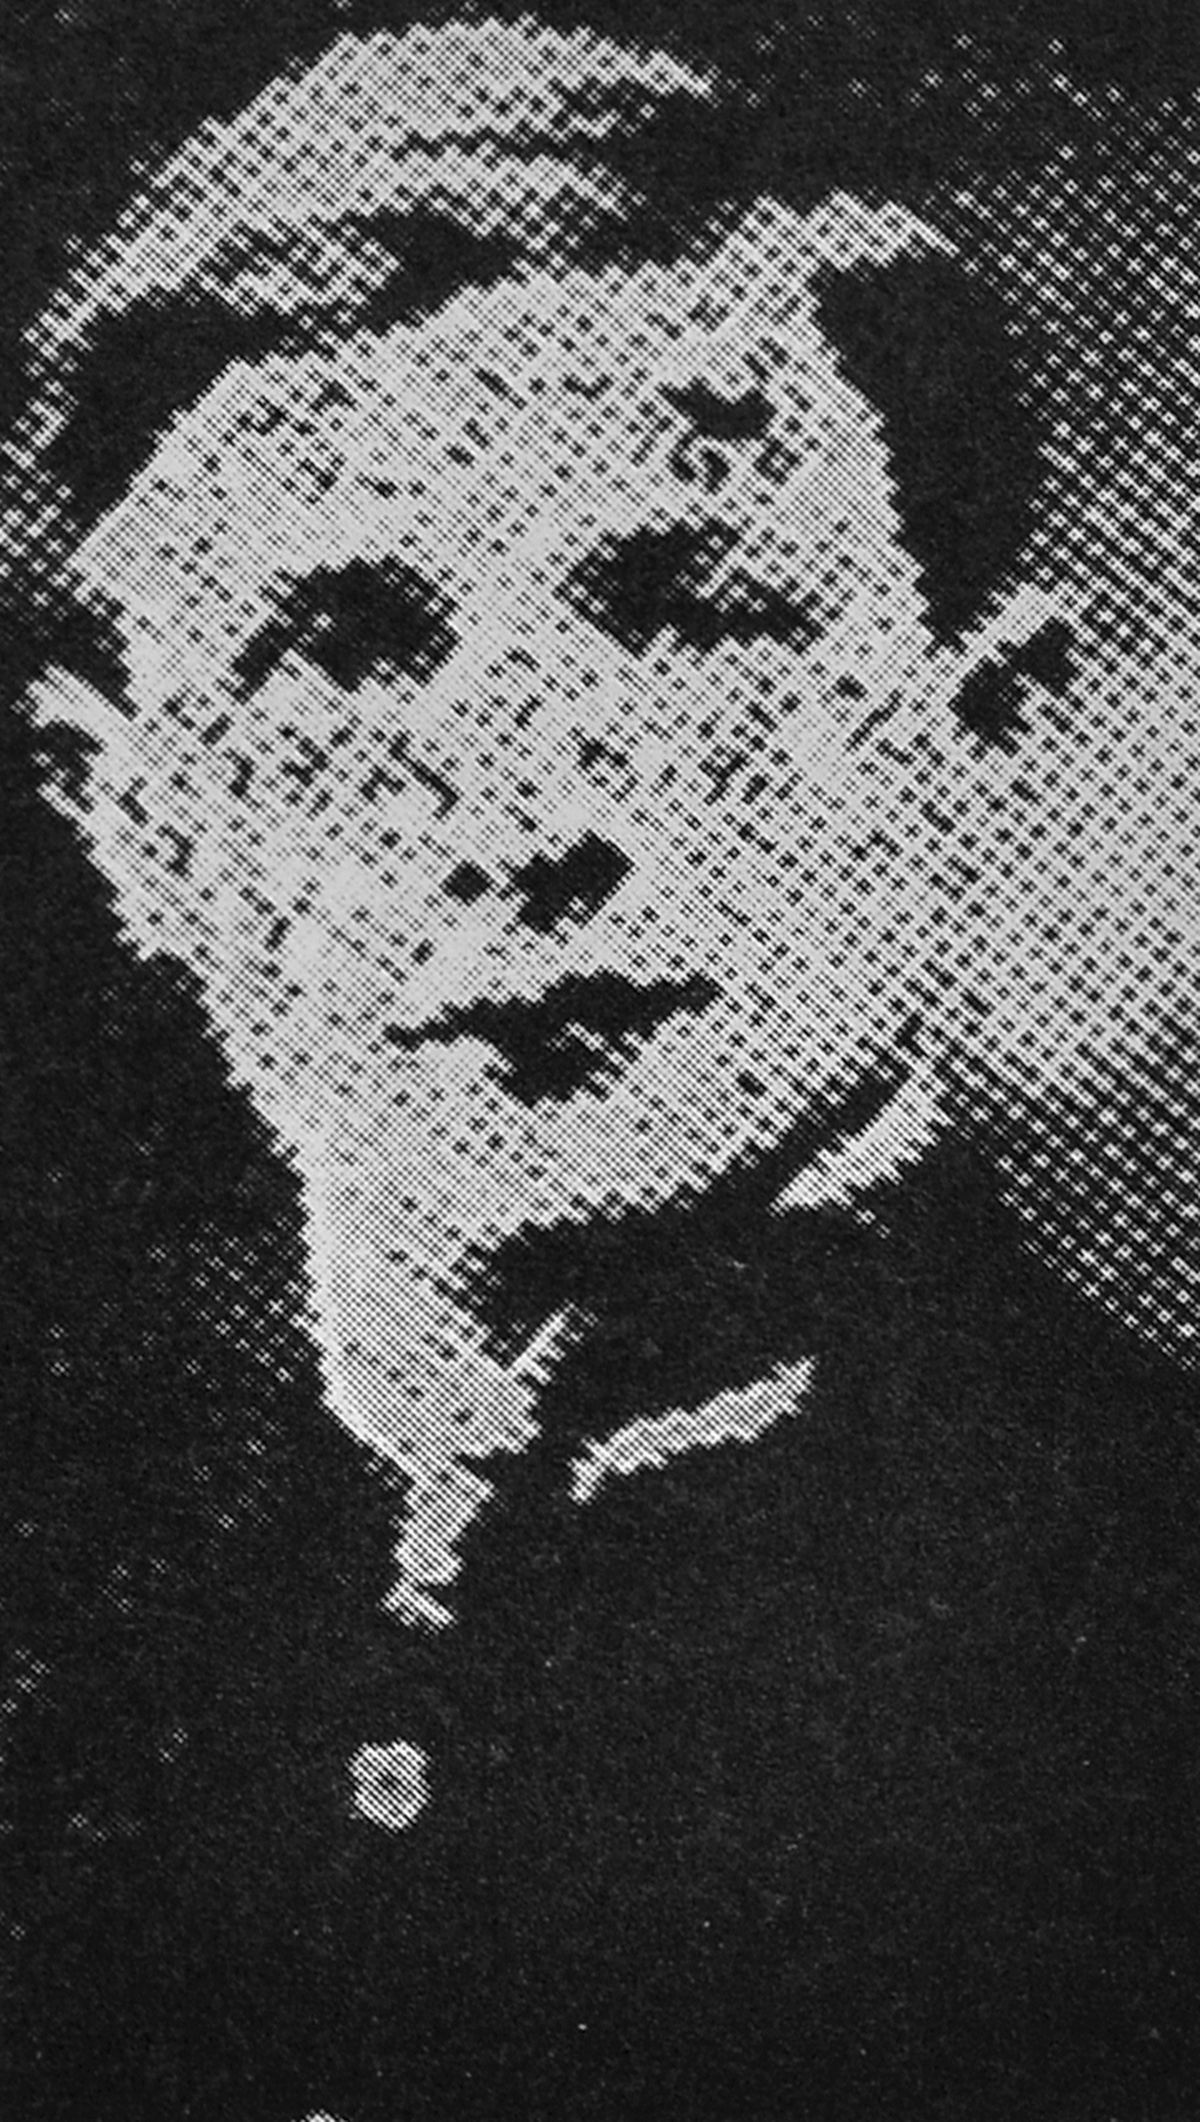 Private William Cooper Lewis had a Shropshire bride - and left her a widow